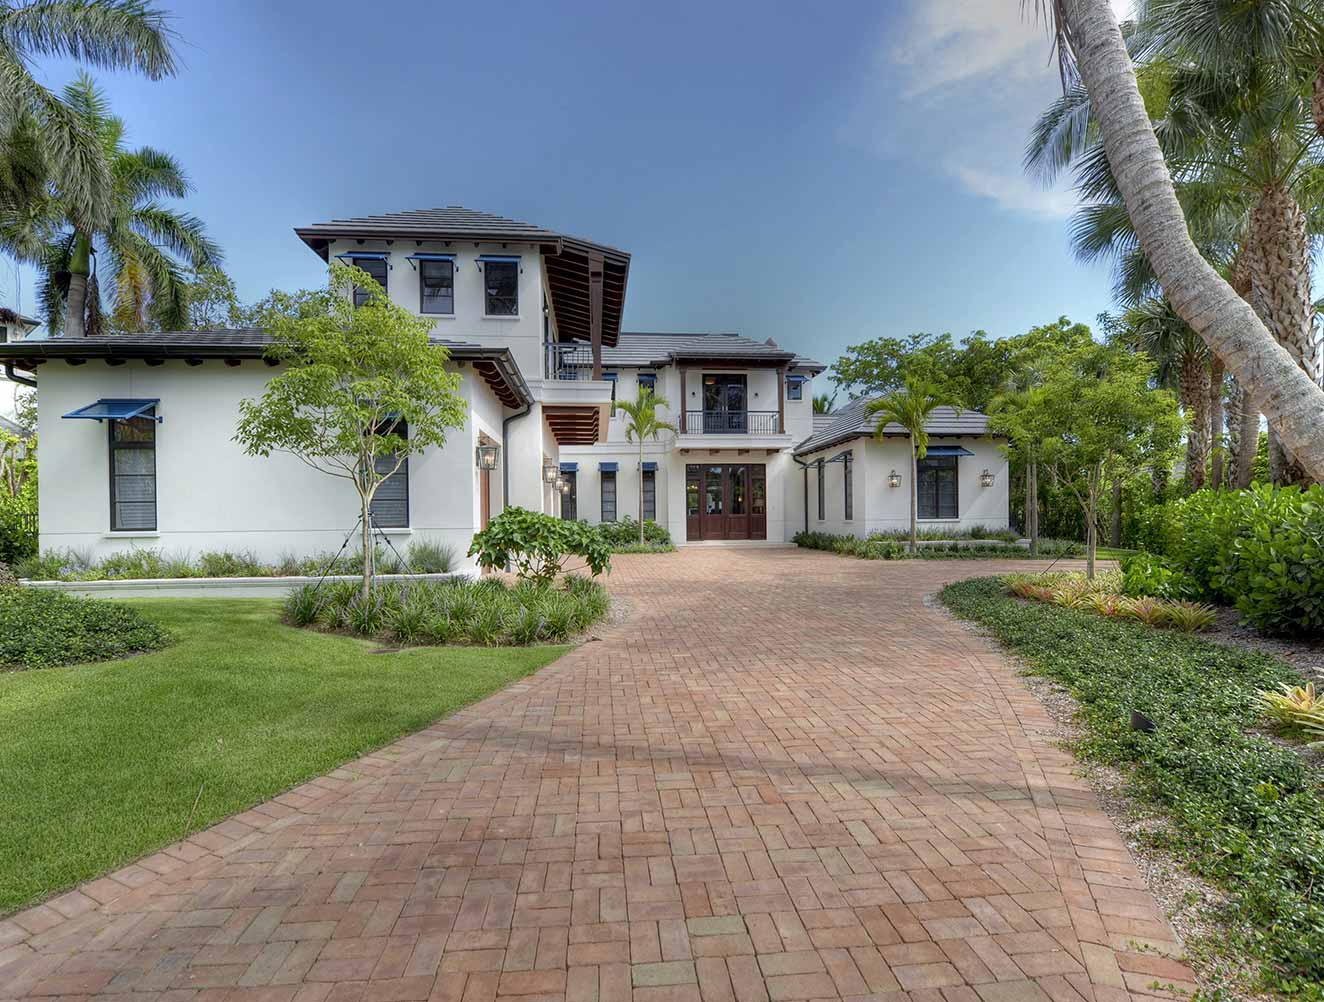 Front Entry and drive at Little Harbour Residence in Naples Florida, single family home designed by Kukk Architecture & Design Naples Architecture Firm